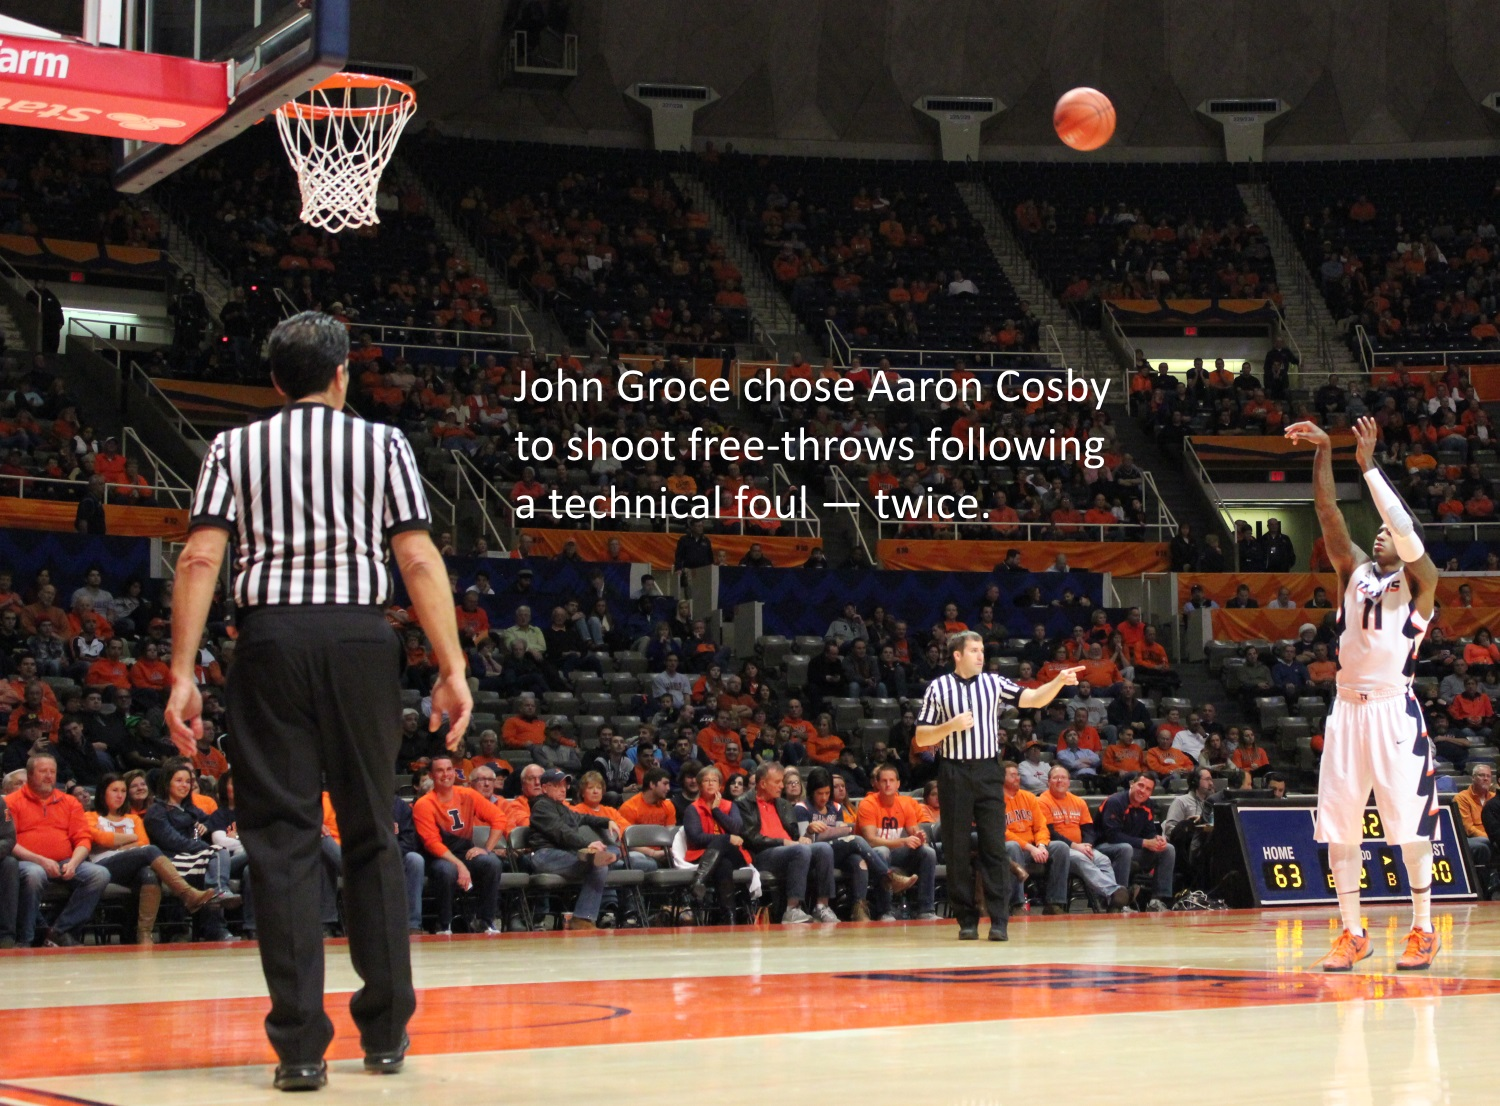 John Groce chose Aaron cosby to shoot free throws